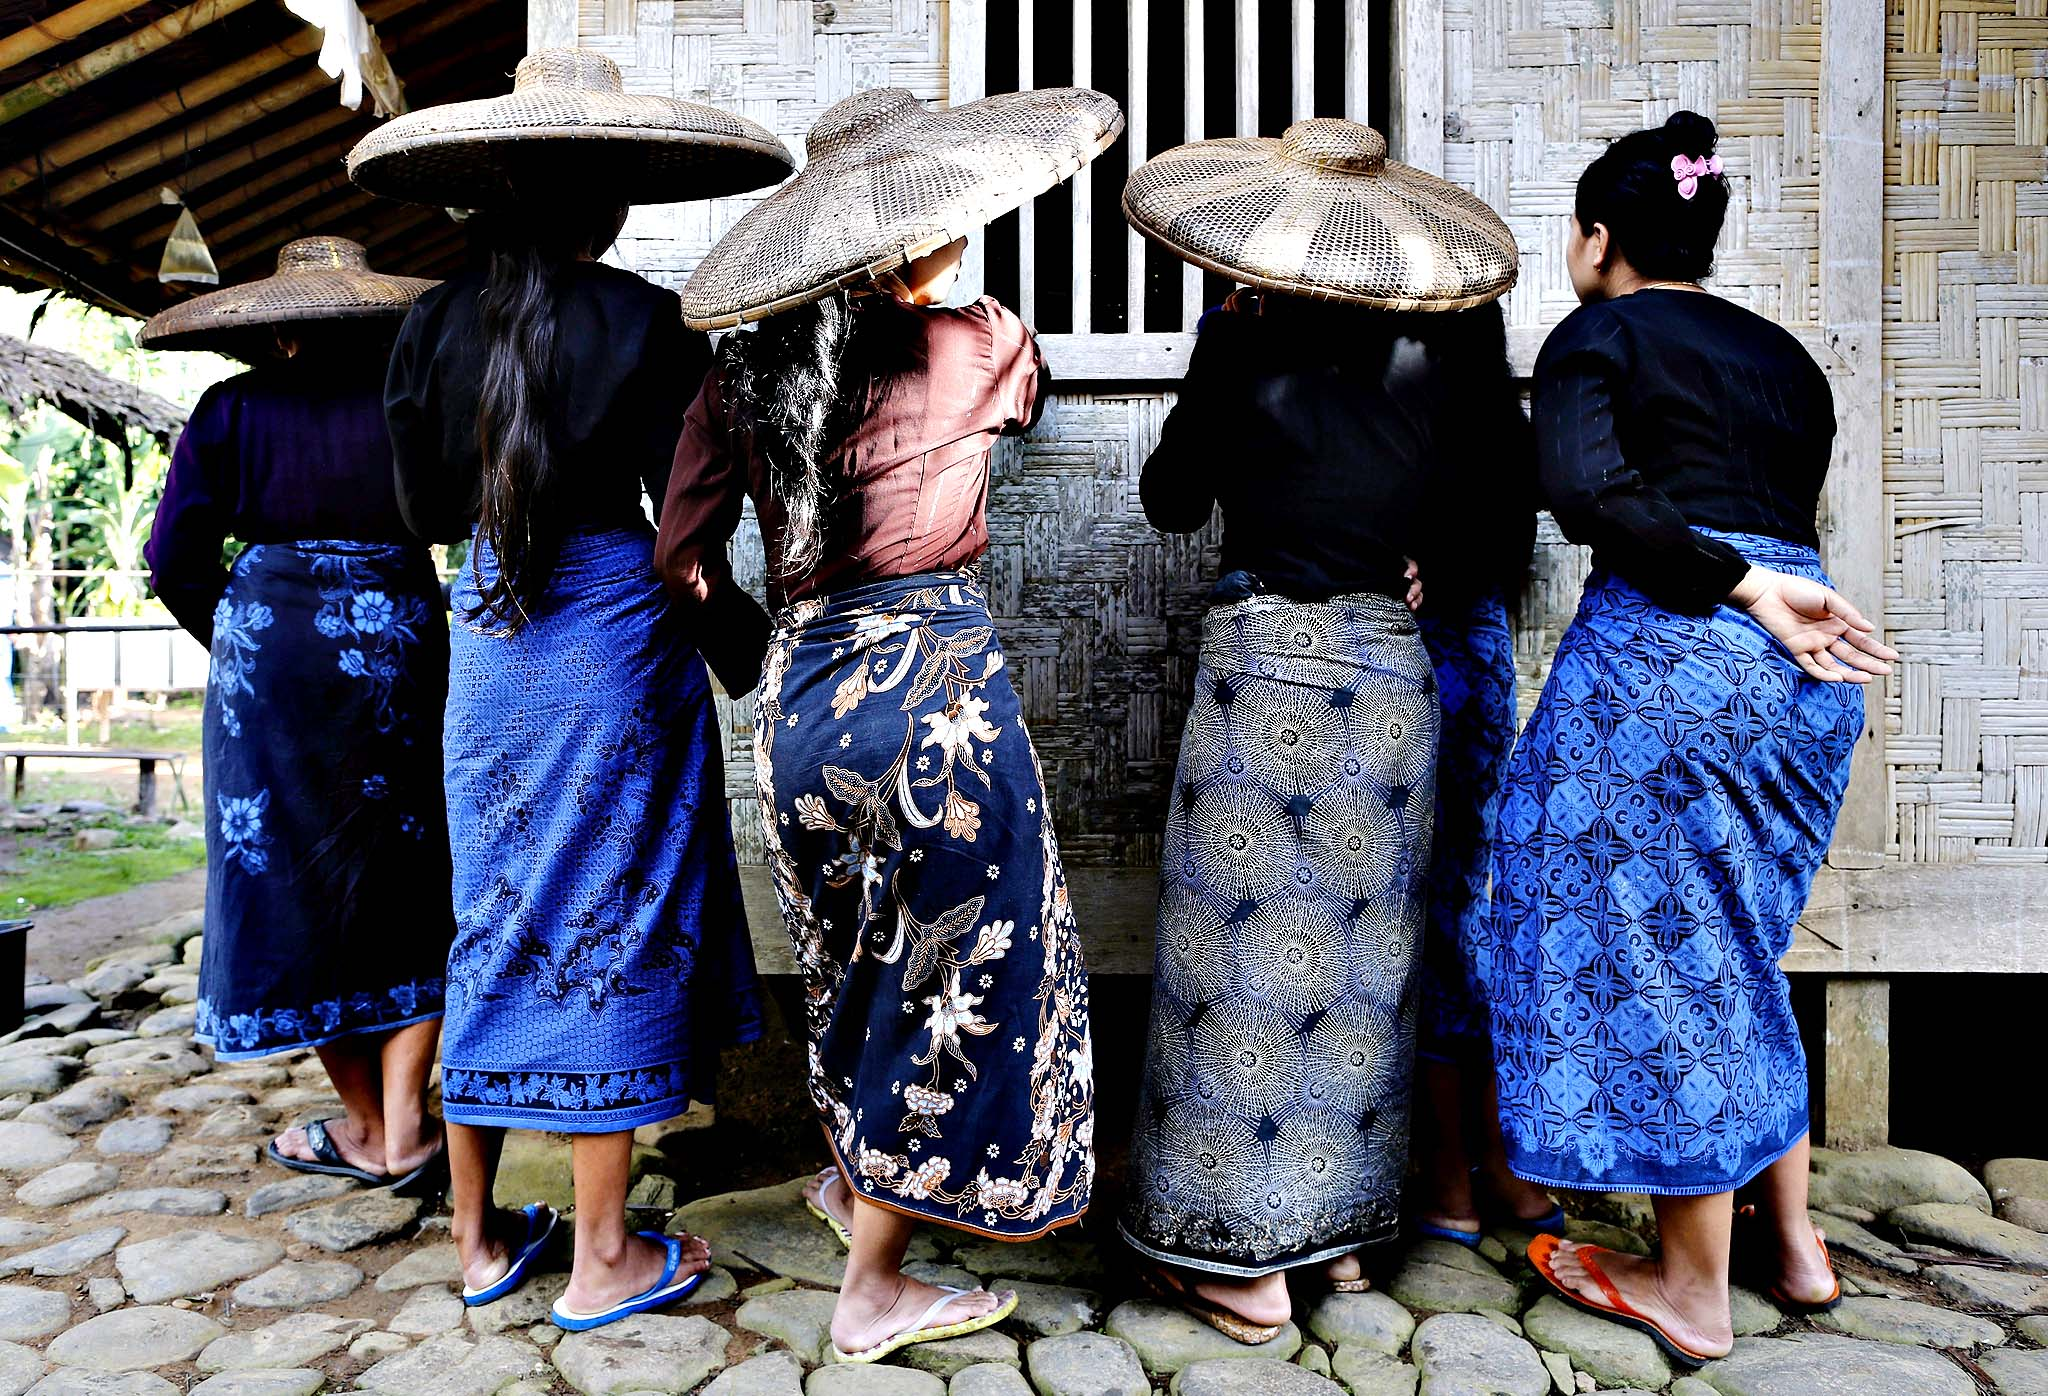 Indonesian Baduy tribe women wait for their turn to cast their ballots during the parliamentary elections at a polling station in Kanekes village, Lebak, Banten province, Indonesia, 09 April 2014. Polls opened on 09 April in Indonesia's parliamentary elections amid expectations of an opposition victory. Twelve national political parties and three local parties in Aceh province are contesting the elections, the fourth since Indonesia embraced democracy following the fall of dictator Suharto in 1998.